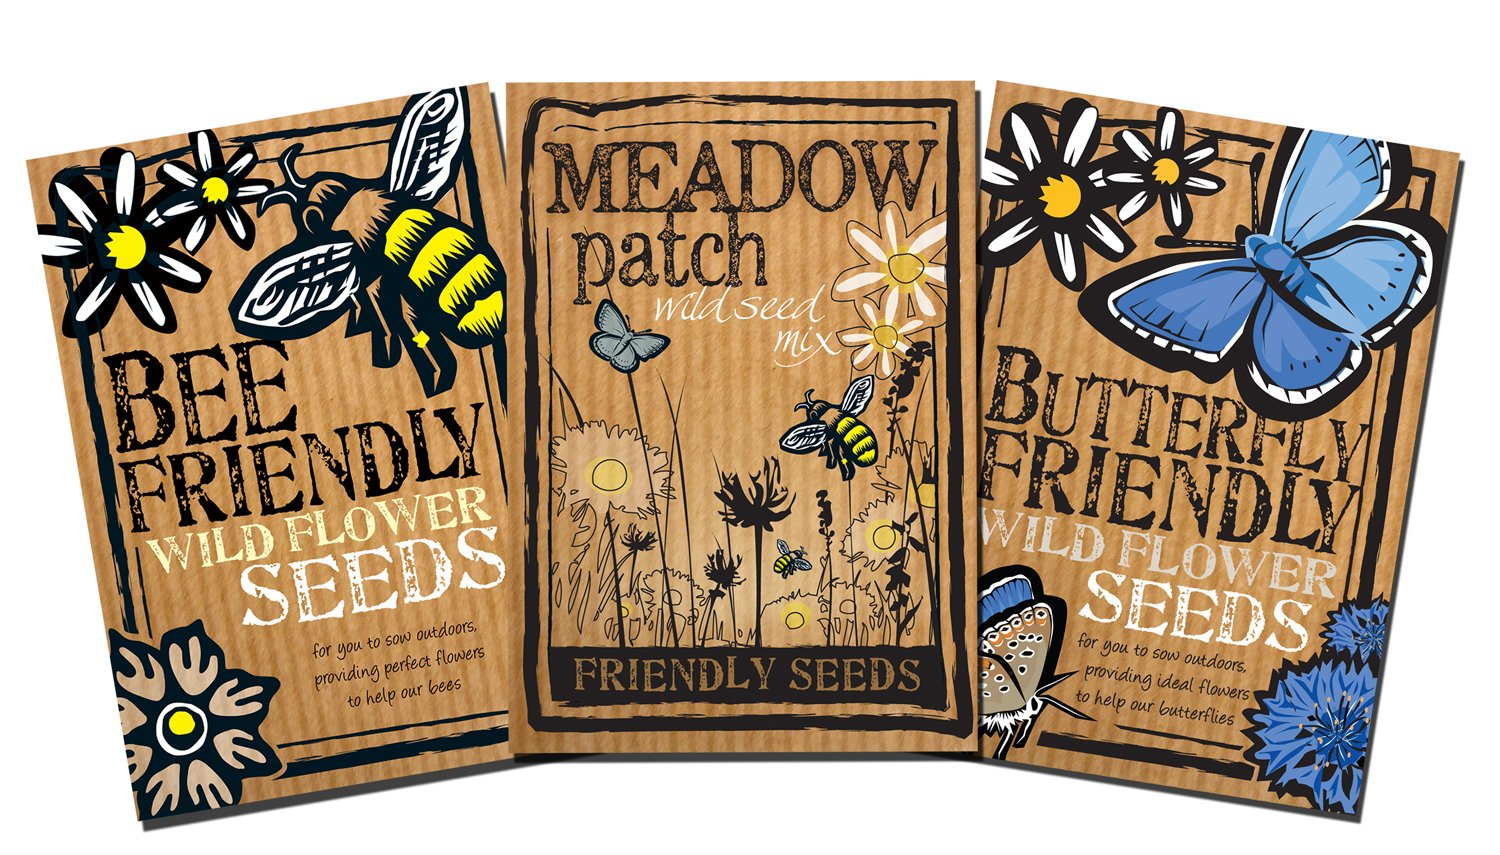 Bee, Butterfly and Meadow Friendly Wild Flower Seeds Trio Pack - Beautiful Flowers in Many Colours, Gardener Gift. Over 1000 Seeds Per Packet, RHS Perfect for Pollinators Mix Friendly Seed Company